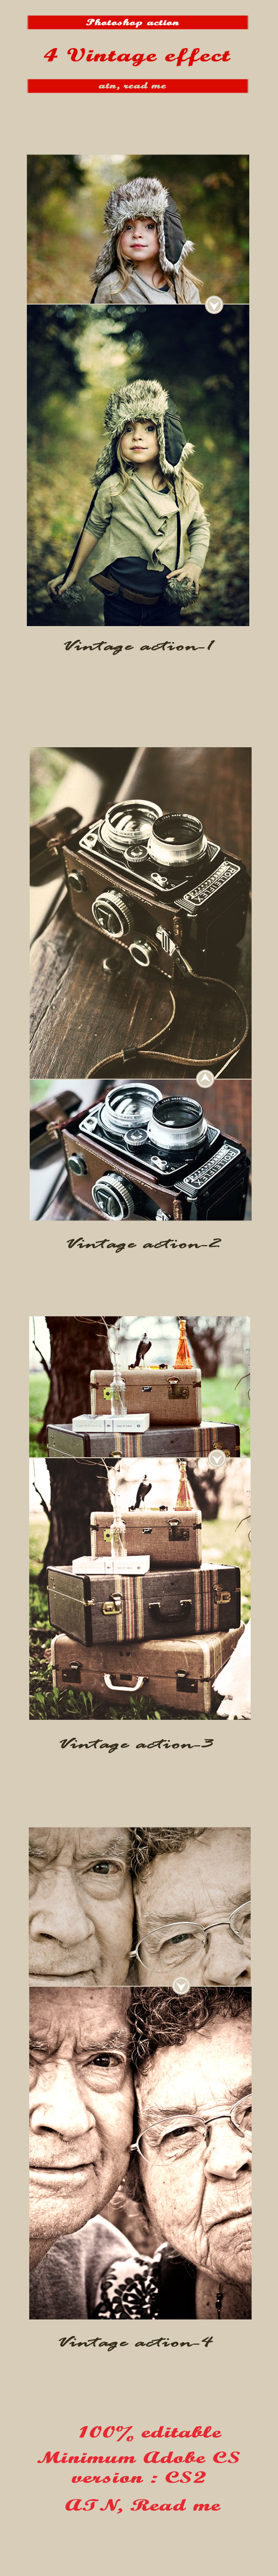 4 Vintage Photo Effect - Photo Effects Actions